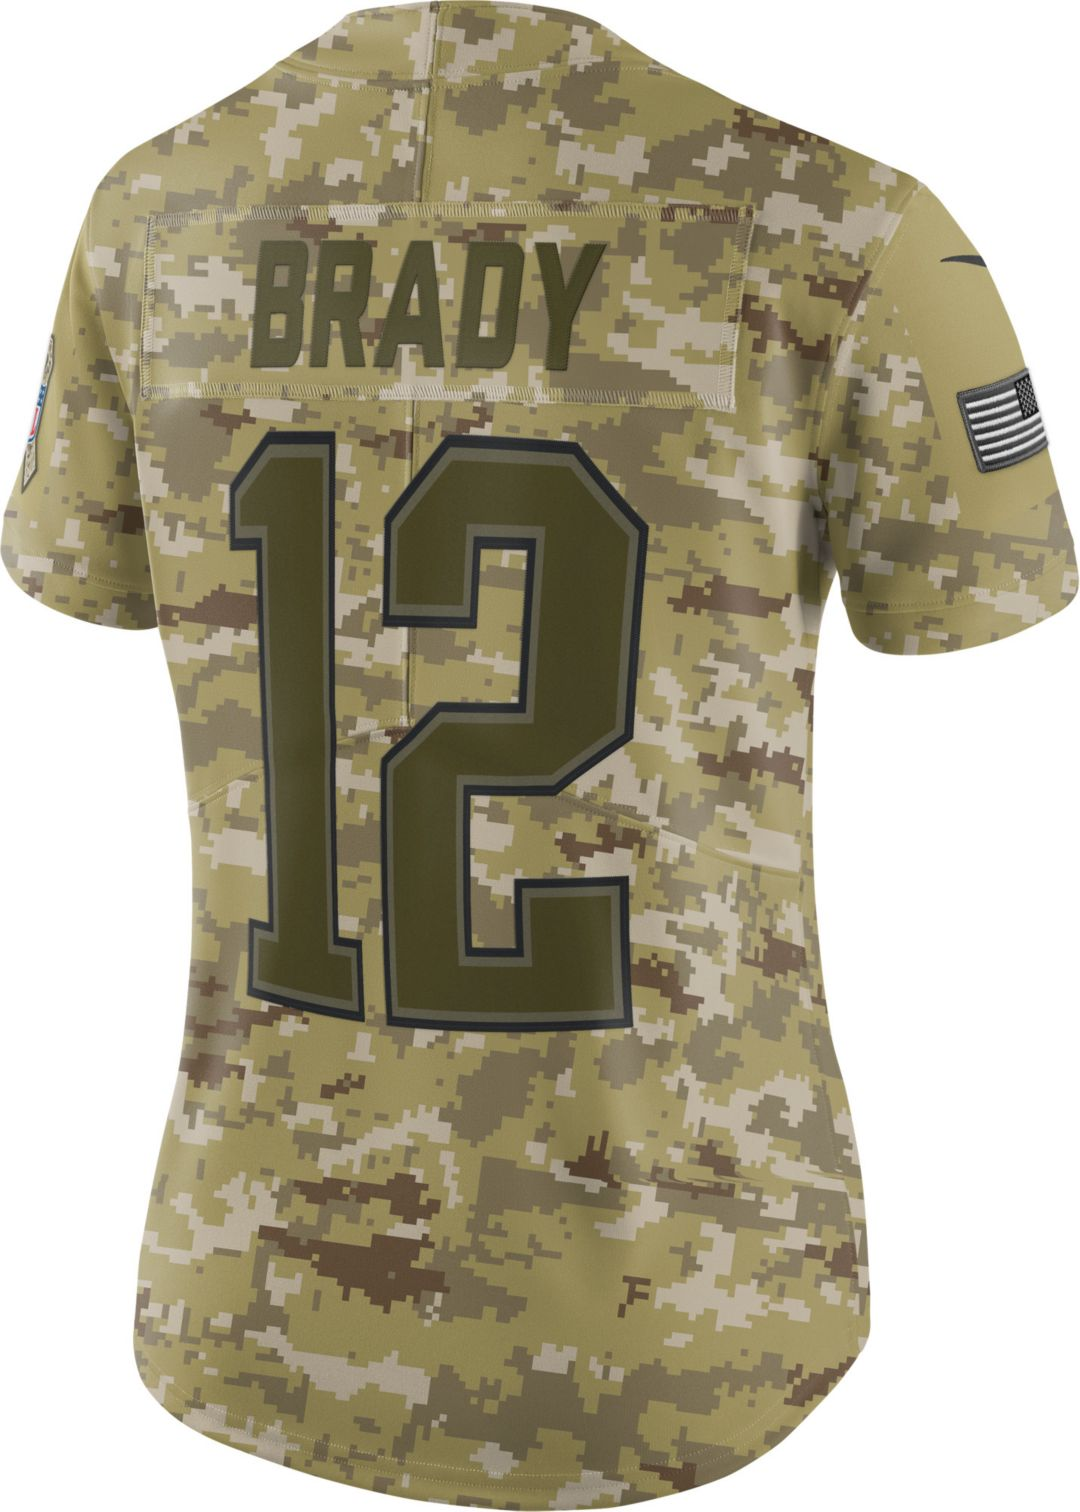 c75597a5 Nike Women's Salute to Service New England Patriots Tom Brady #12  Camouflage Limited Jersey. noImageFound. Previous. 1. 2. 3